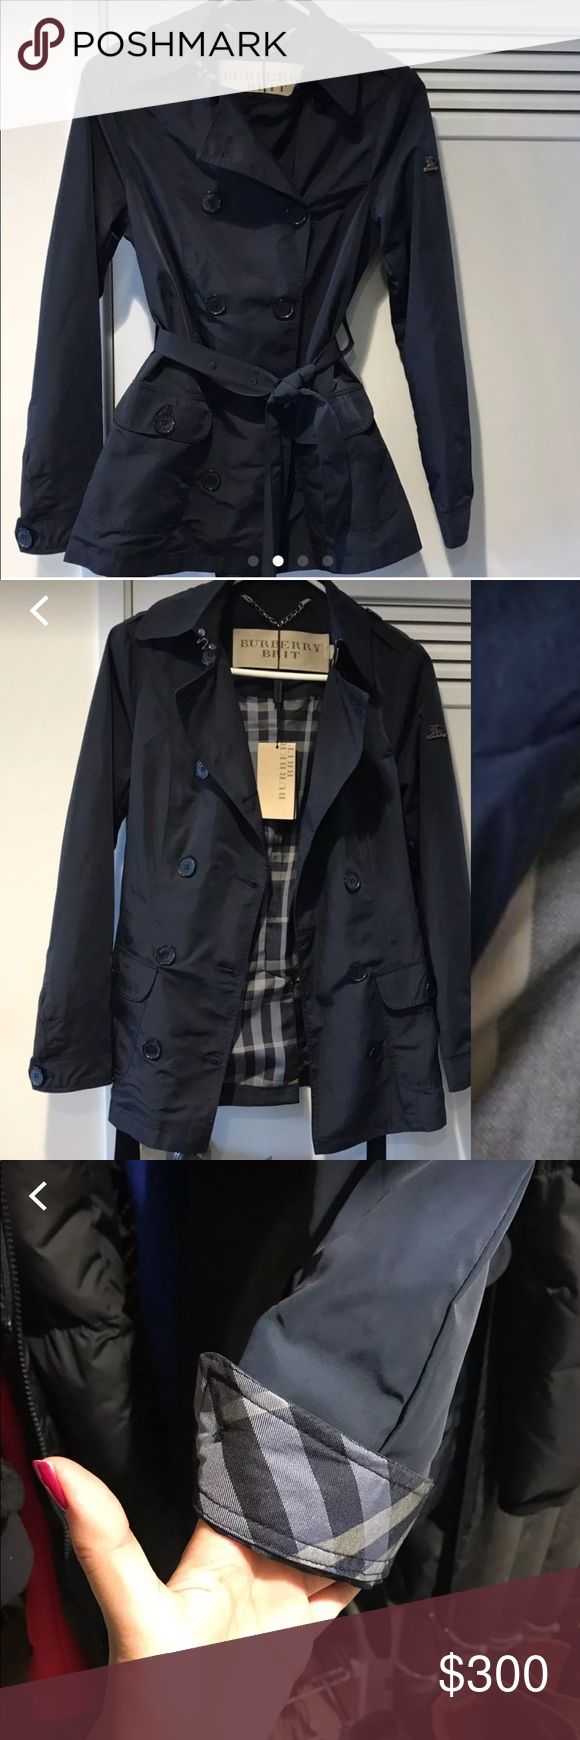 FINAL PRICE Lightweight Burberry Navy trench XS Pre owned but excellent condition. No tags though (took this photo before they came off). This is a lightweight trench purchased at Las Vegas Burberry outlet store. Burberry tends to run small so this fits true to size XS from Burberry. Selling because it's too cold where I live to really get good use out of this and need to pay for holiday bills :-/ PRICE FIRM Burberry Jackets & Coats Trench Coats